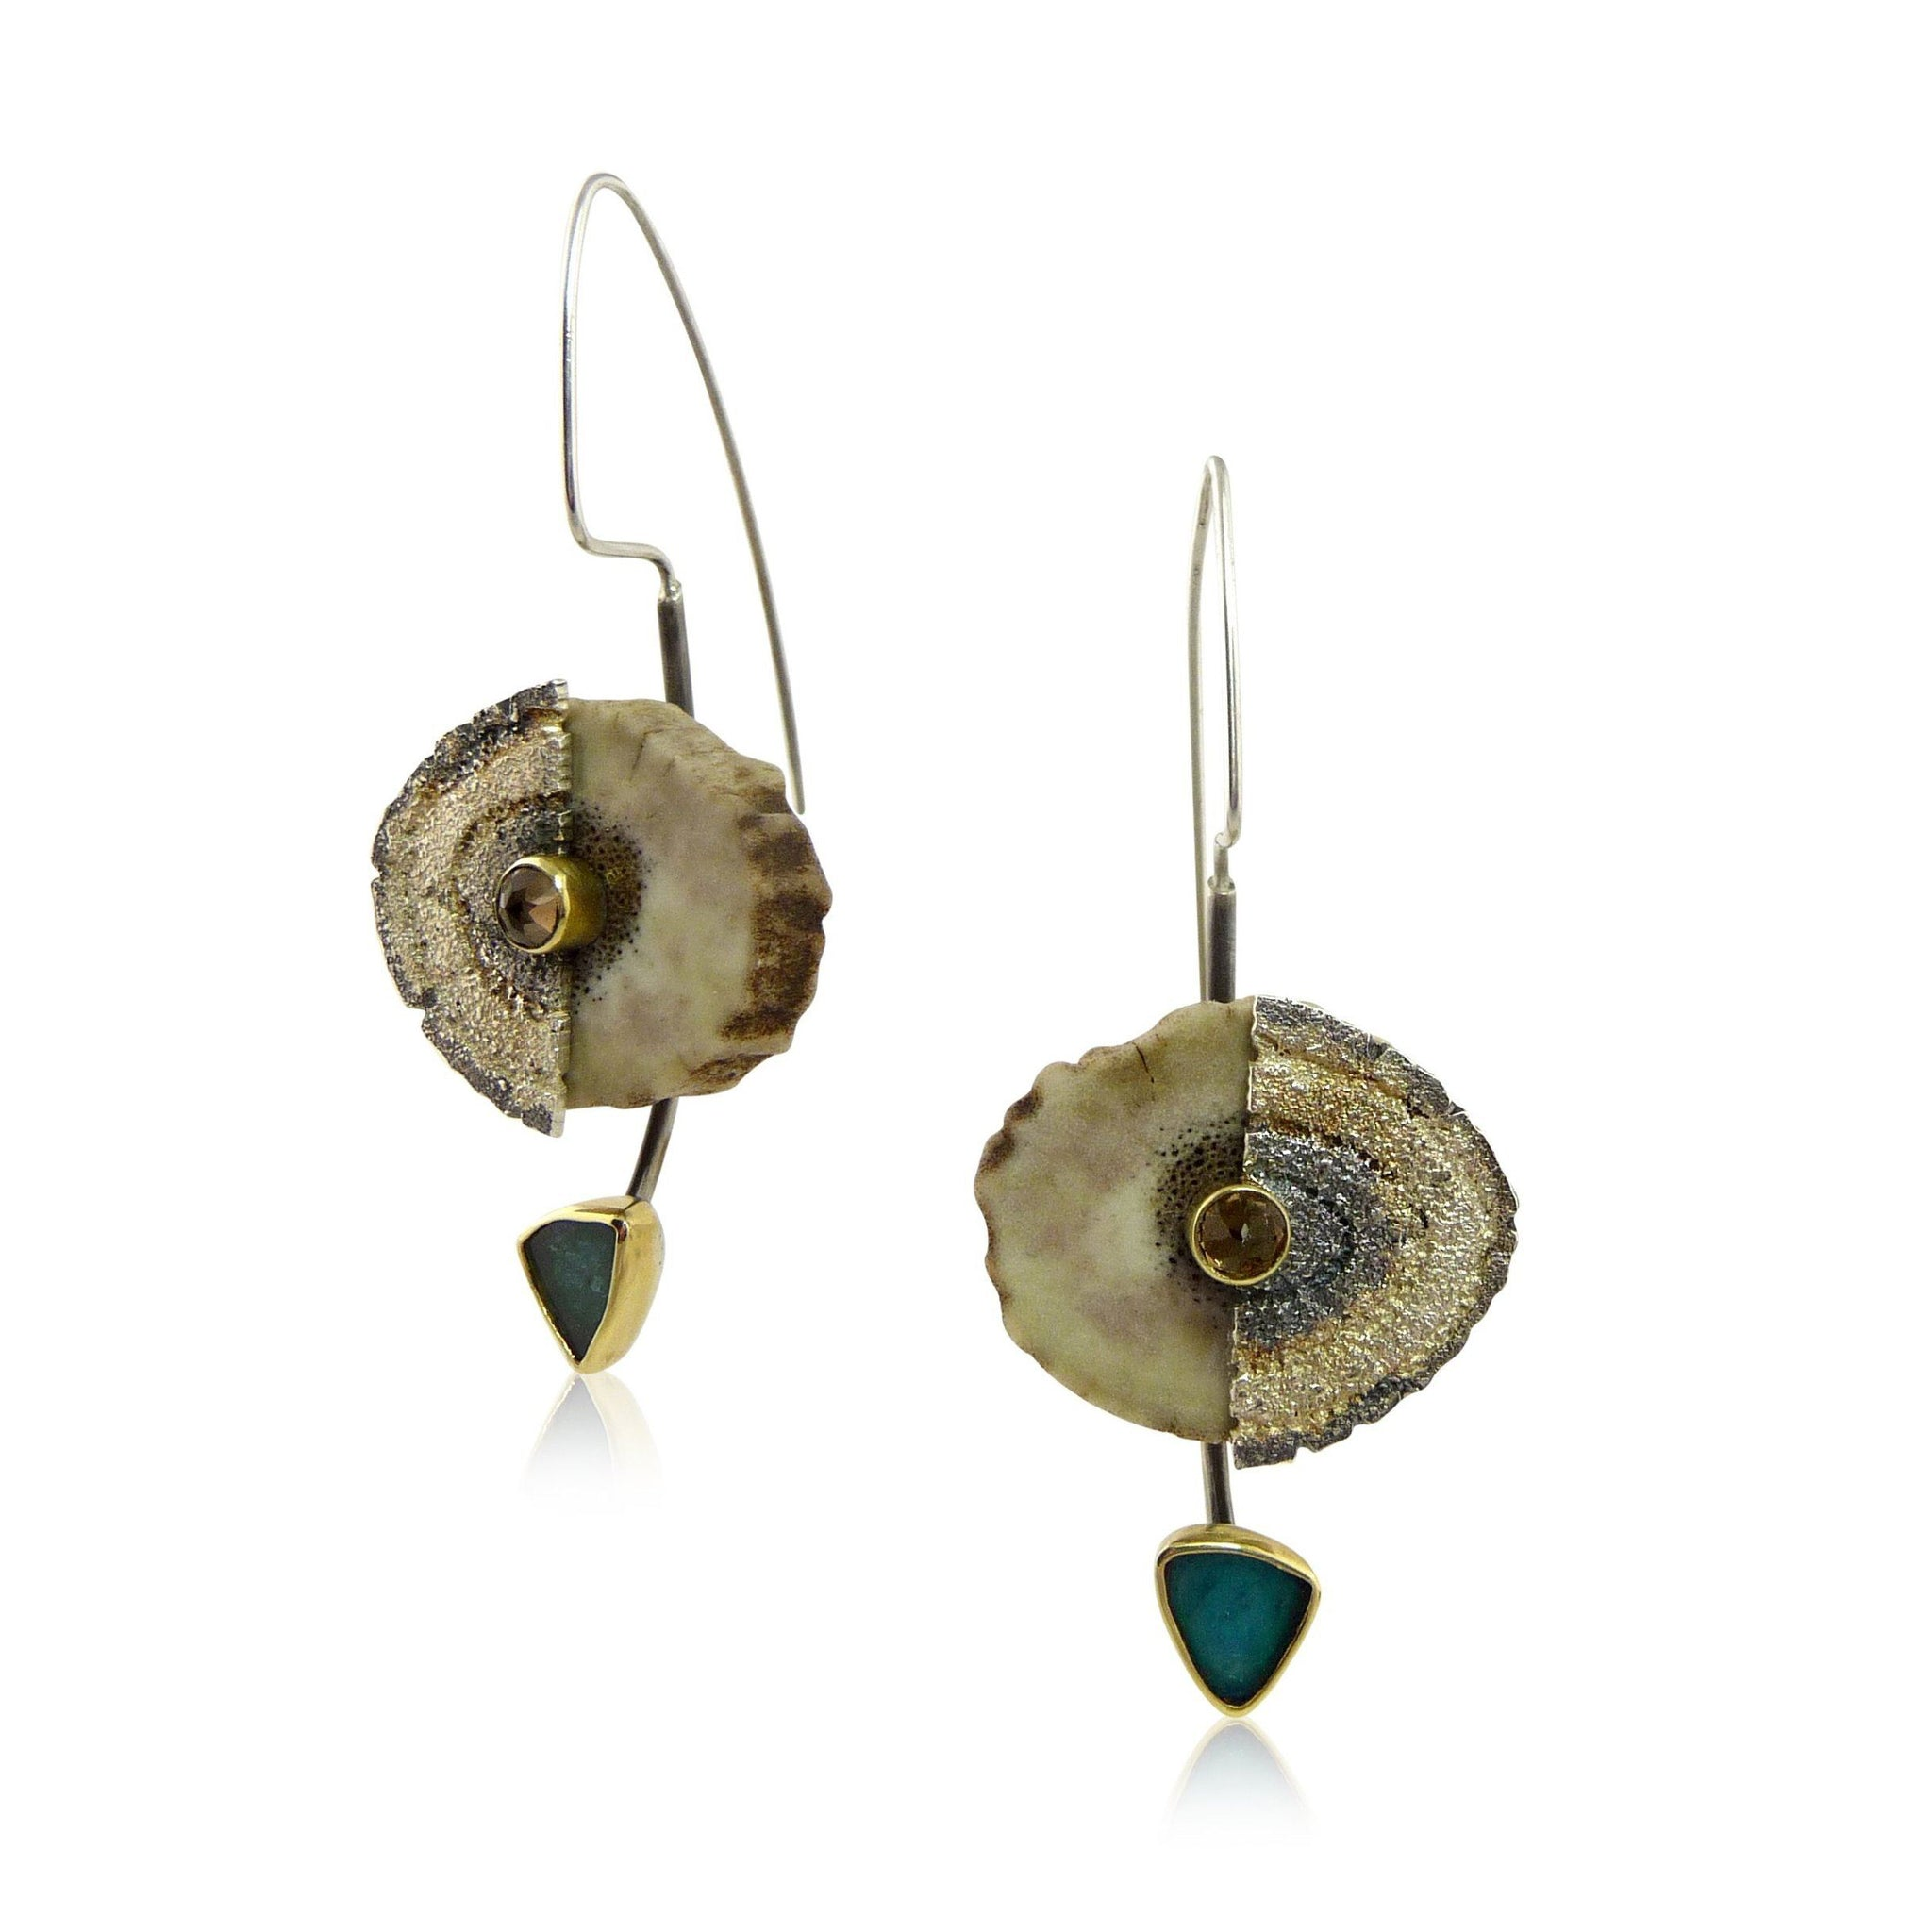 74a7062c8 Antler Earrings - jenny reeves